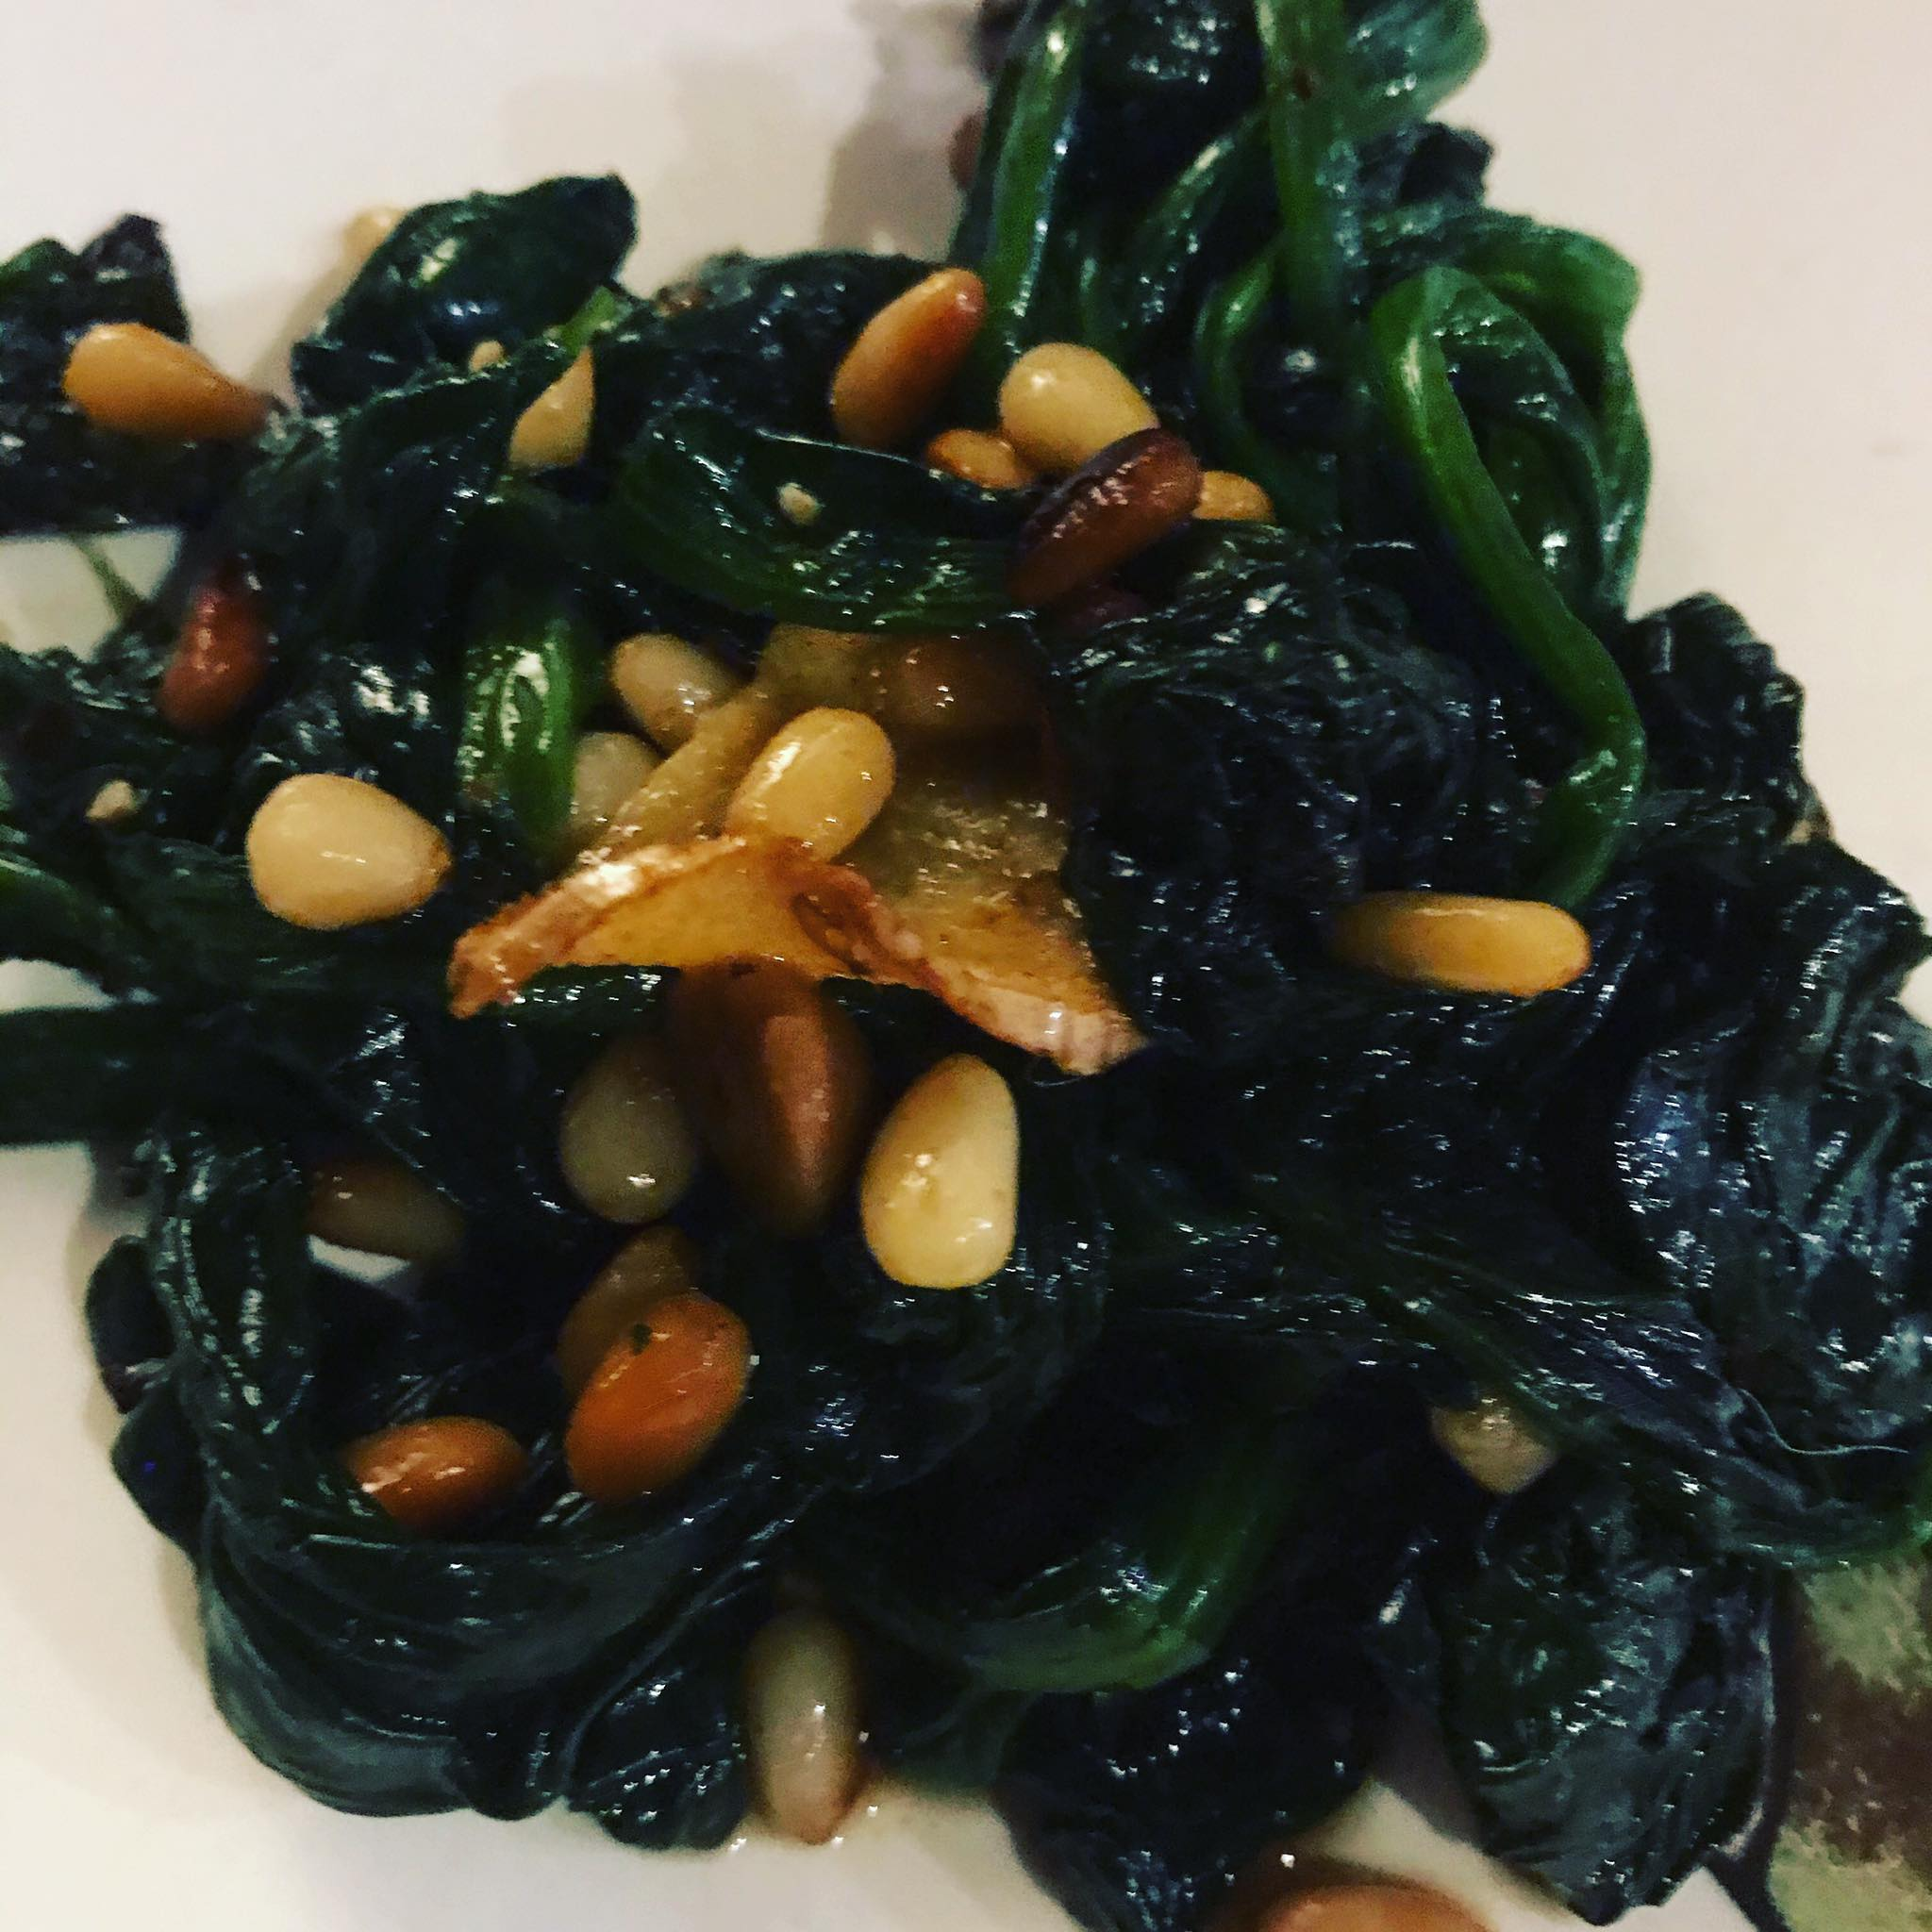 Spinach and Pine Nuts